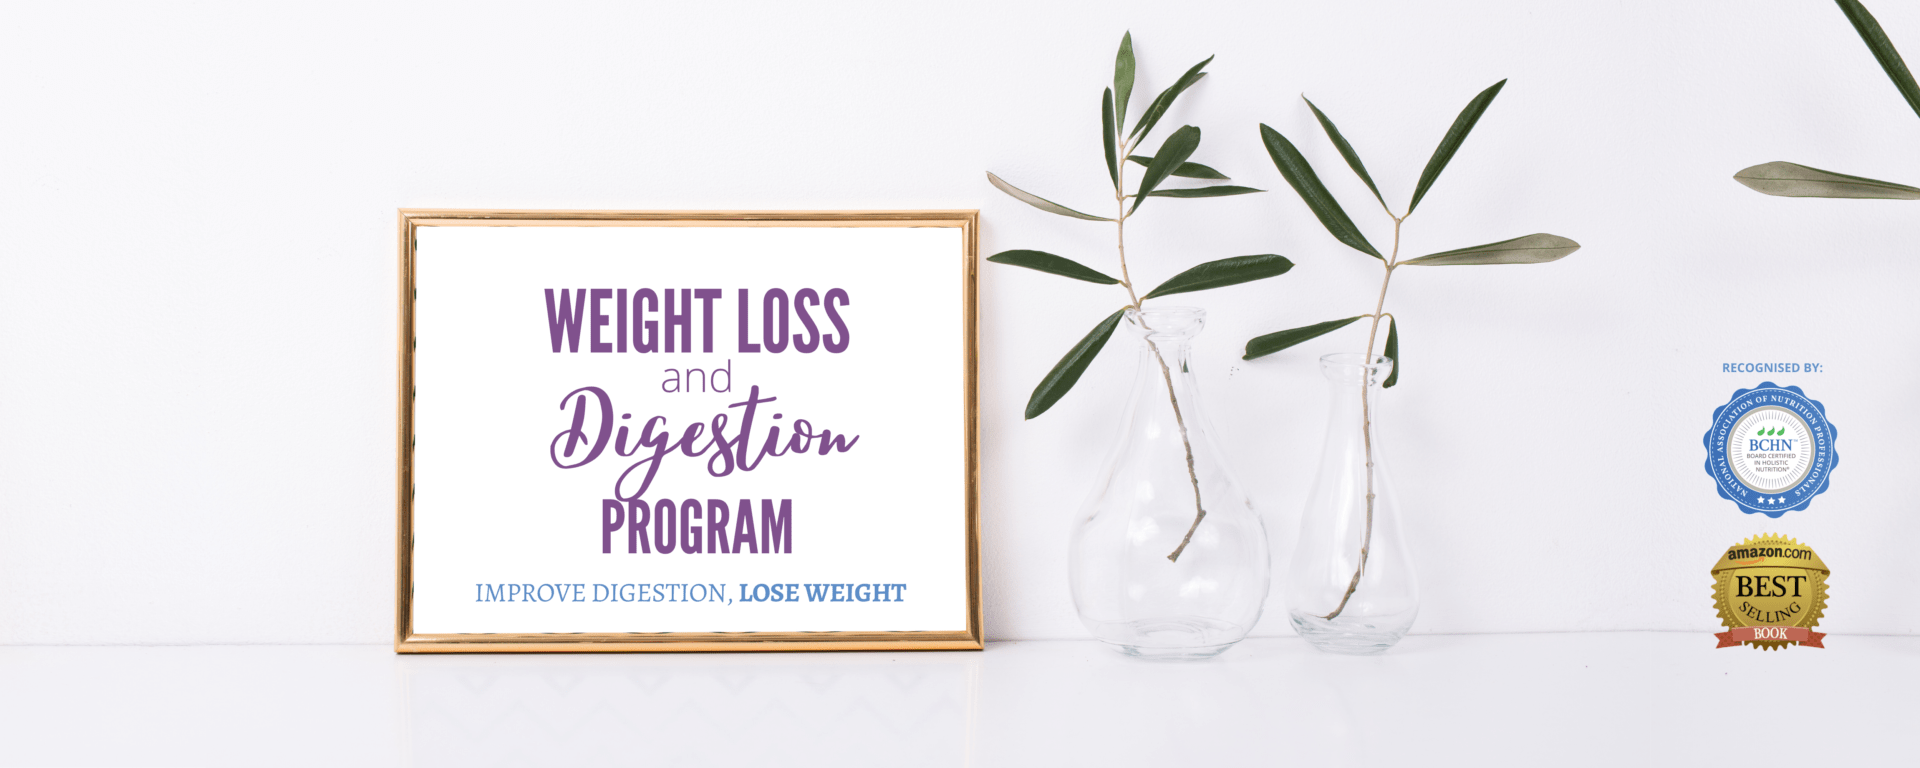 Weight Loss and Digestion